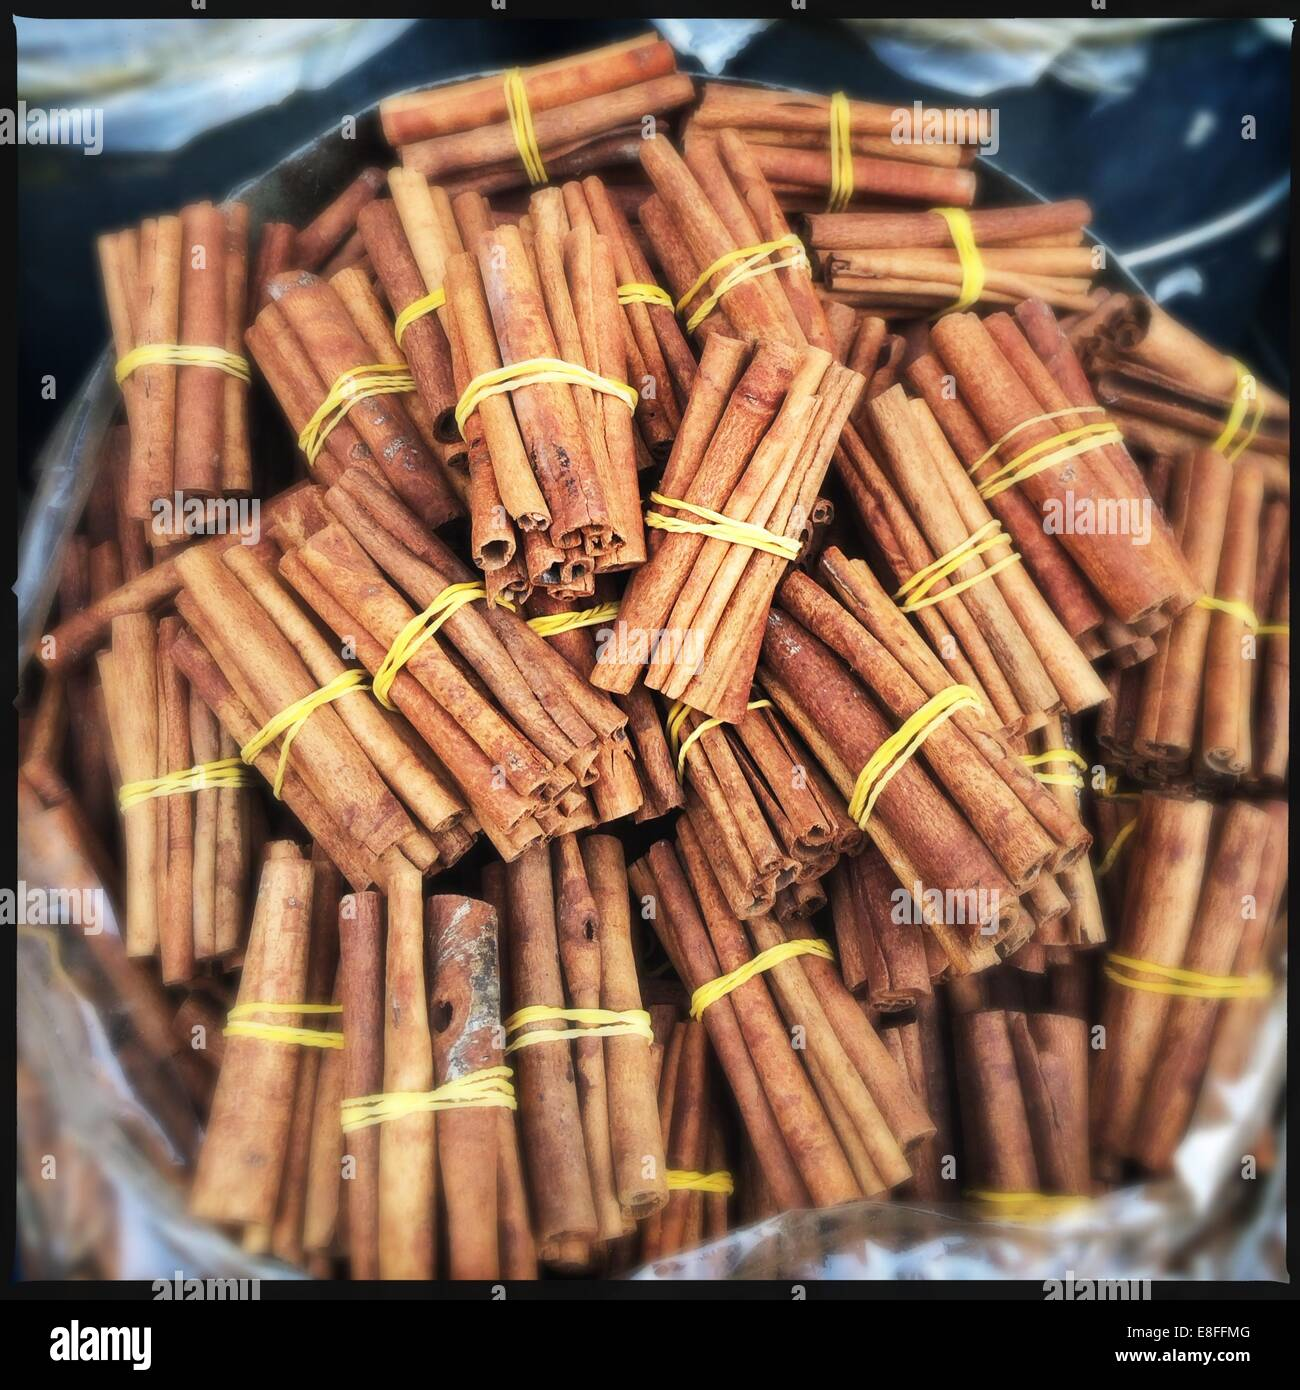 Cinnamon sticks for sale - Stock Image